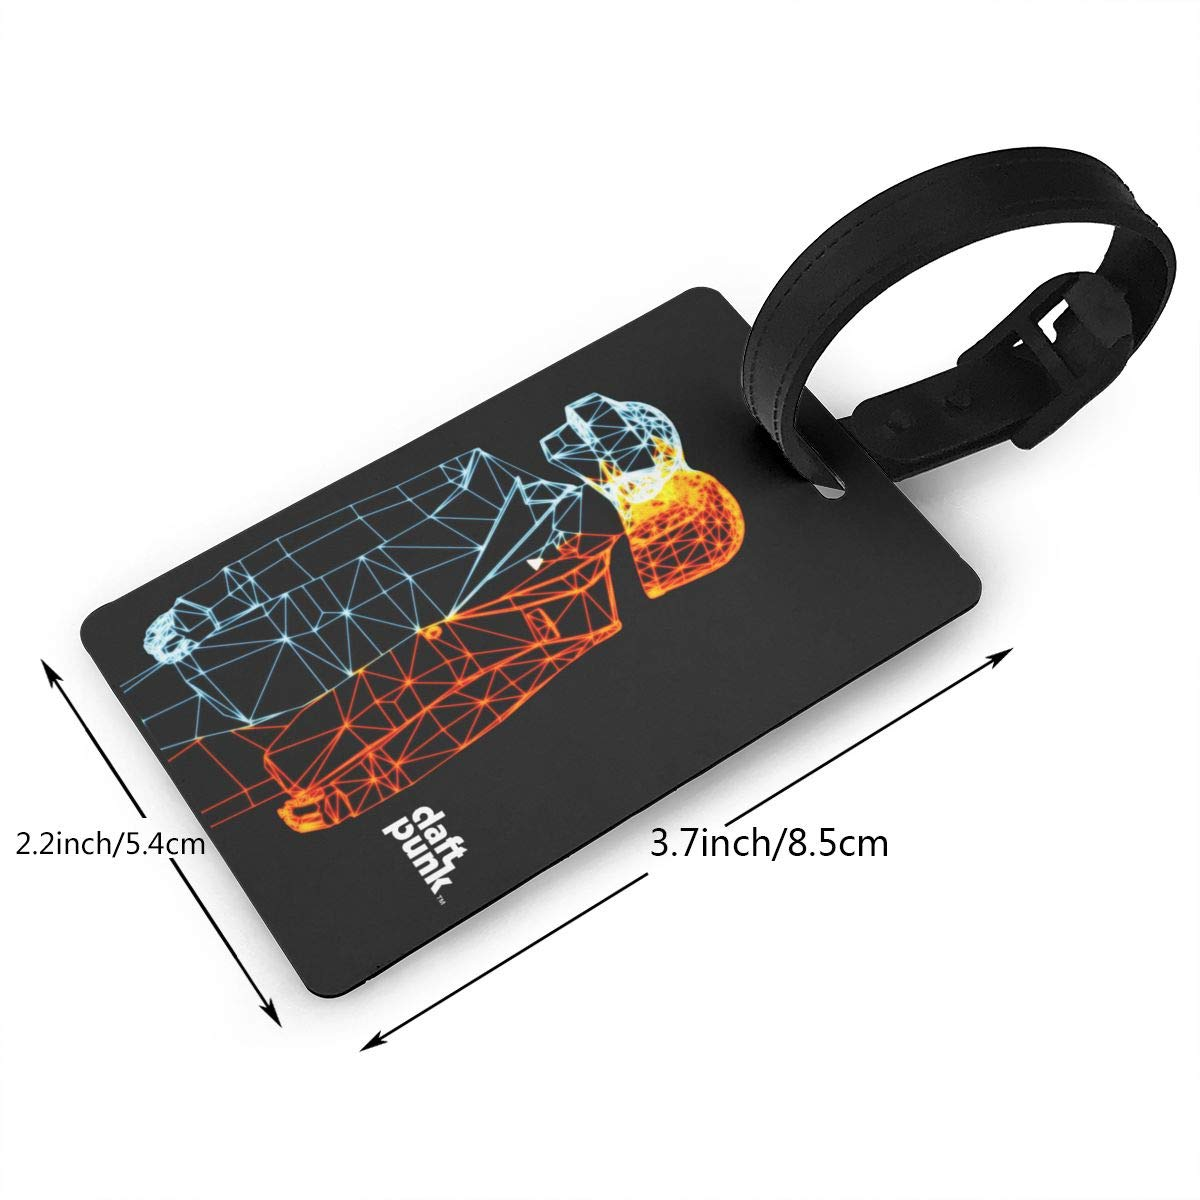 Hushuxiapp Daft Punk Complete Printed Design PVC Luggage Tag Travel Suitcase ID Labels Accessories Leather Wristband